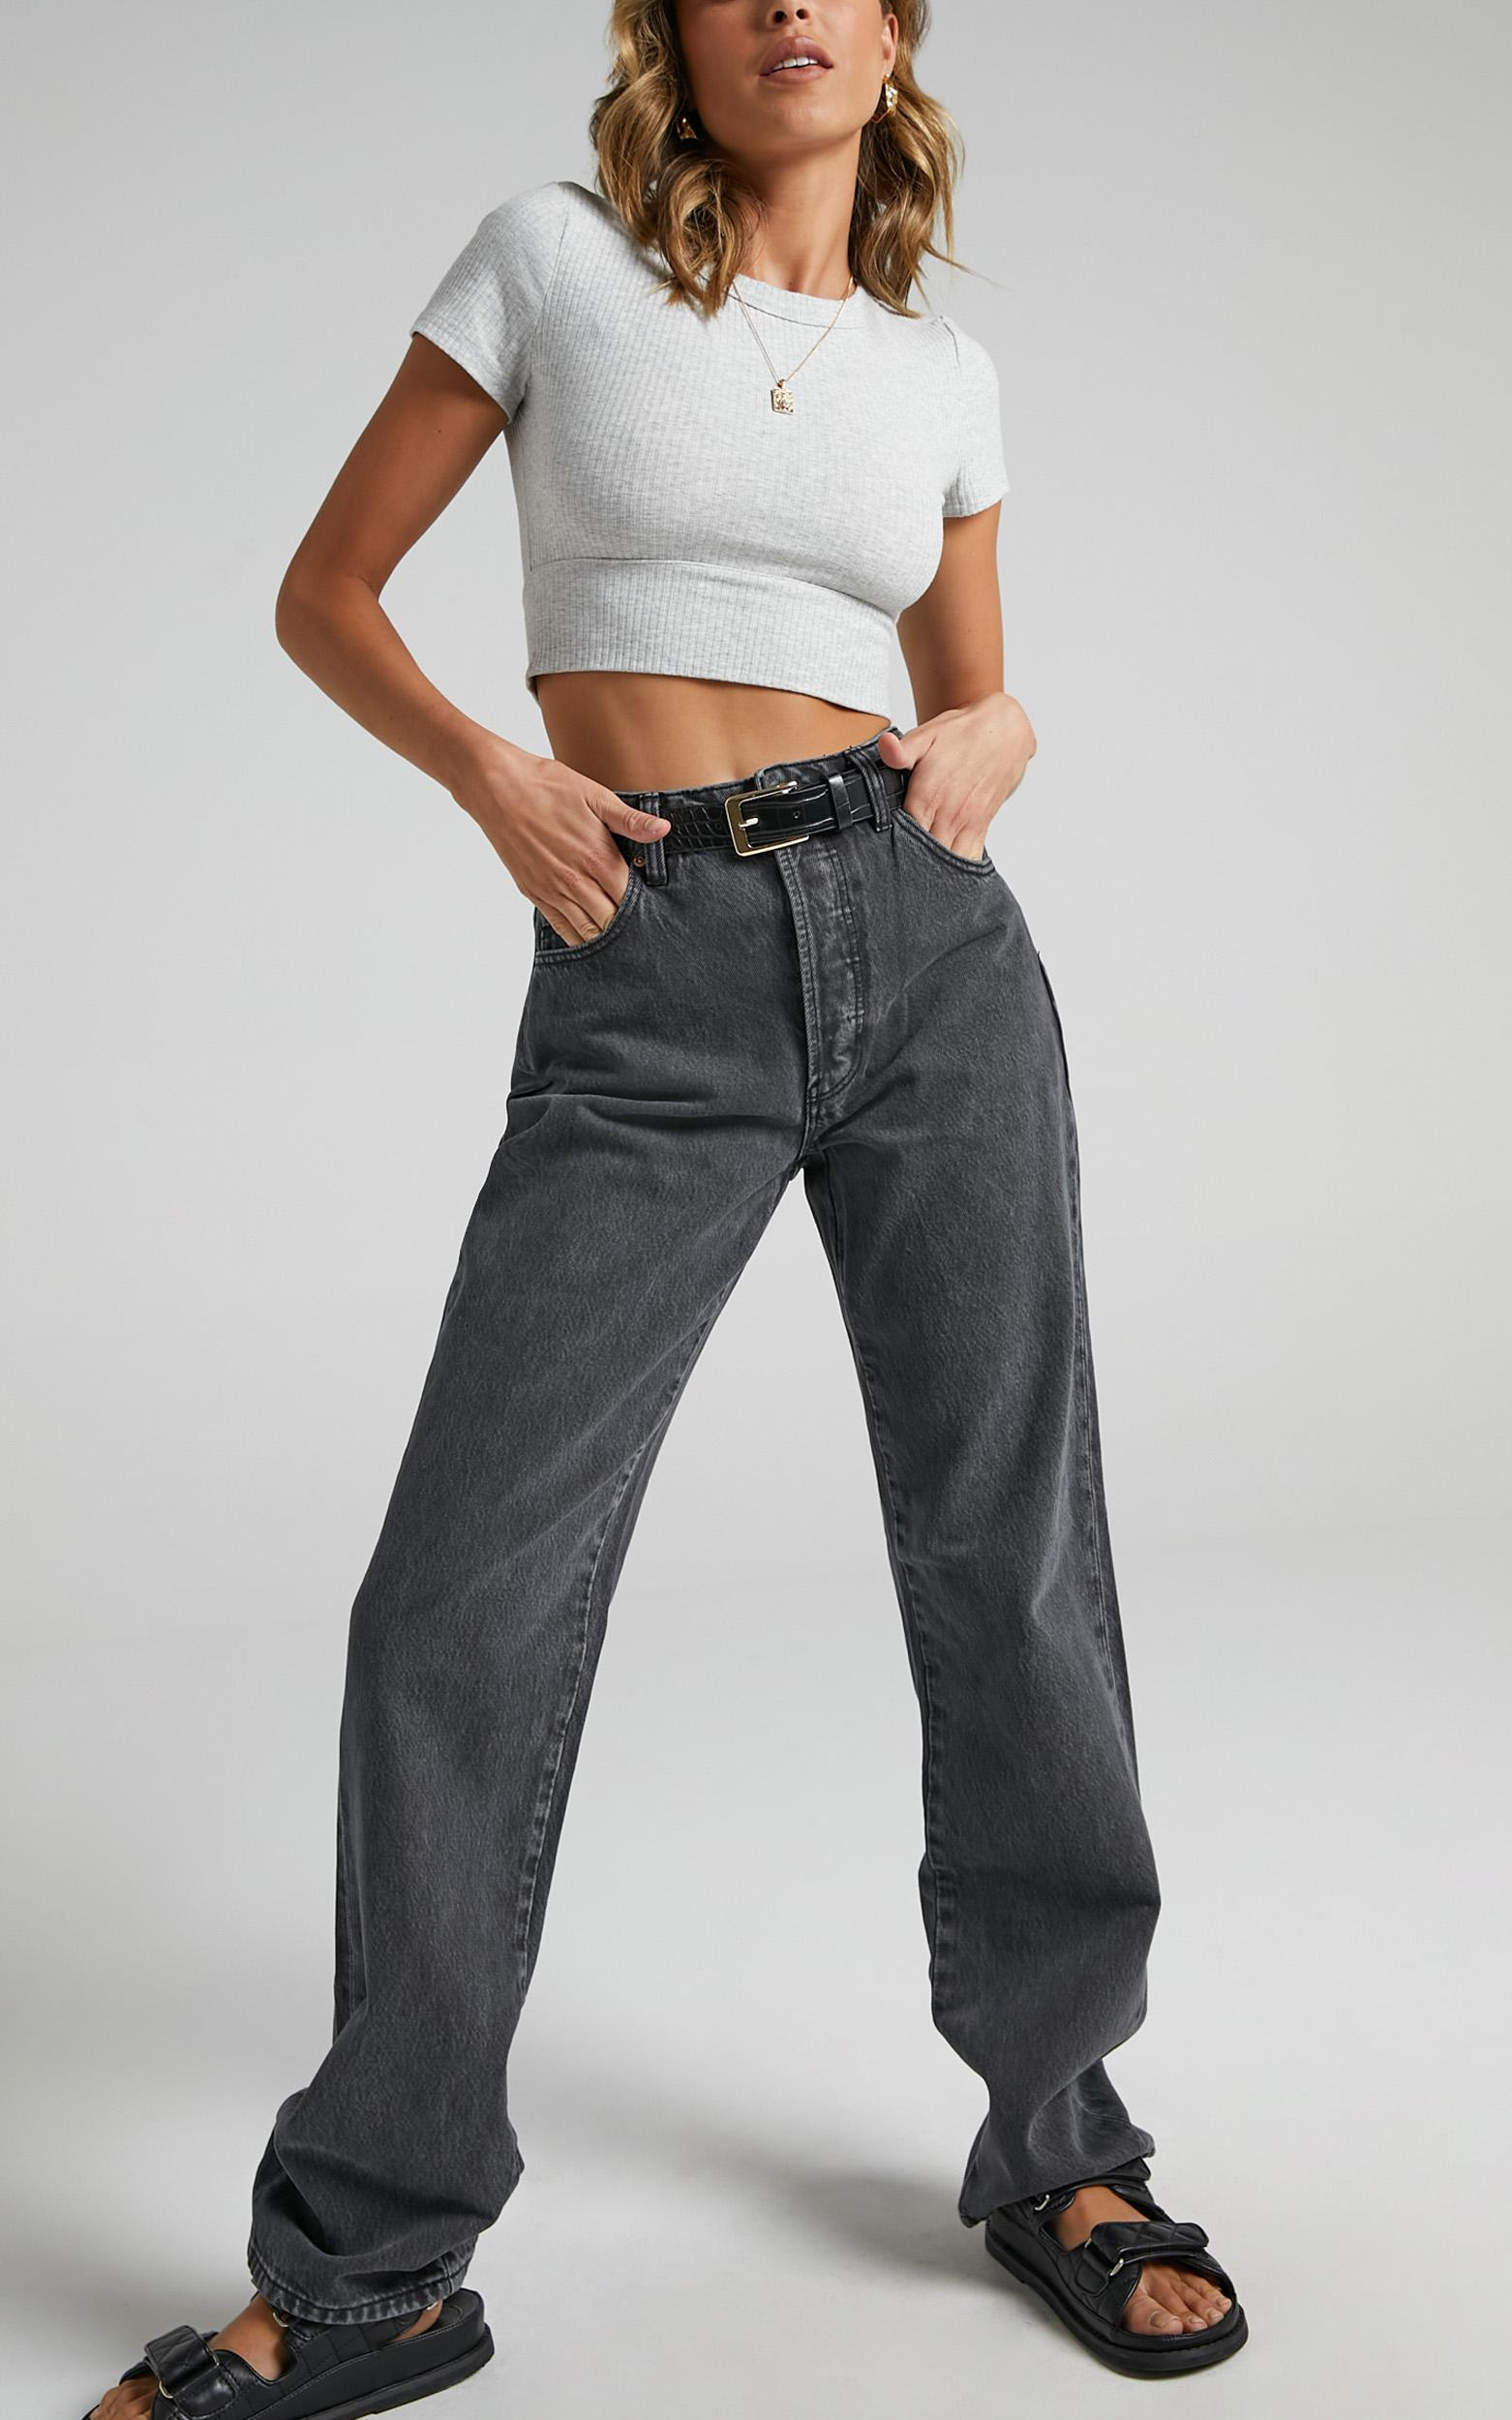 Rollas - Classic Straight Jean in Vintage Black - 6 (XS), Black, hi-res image number null